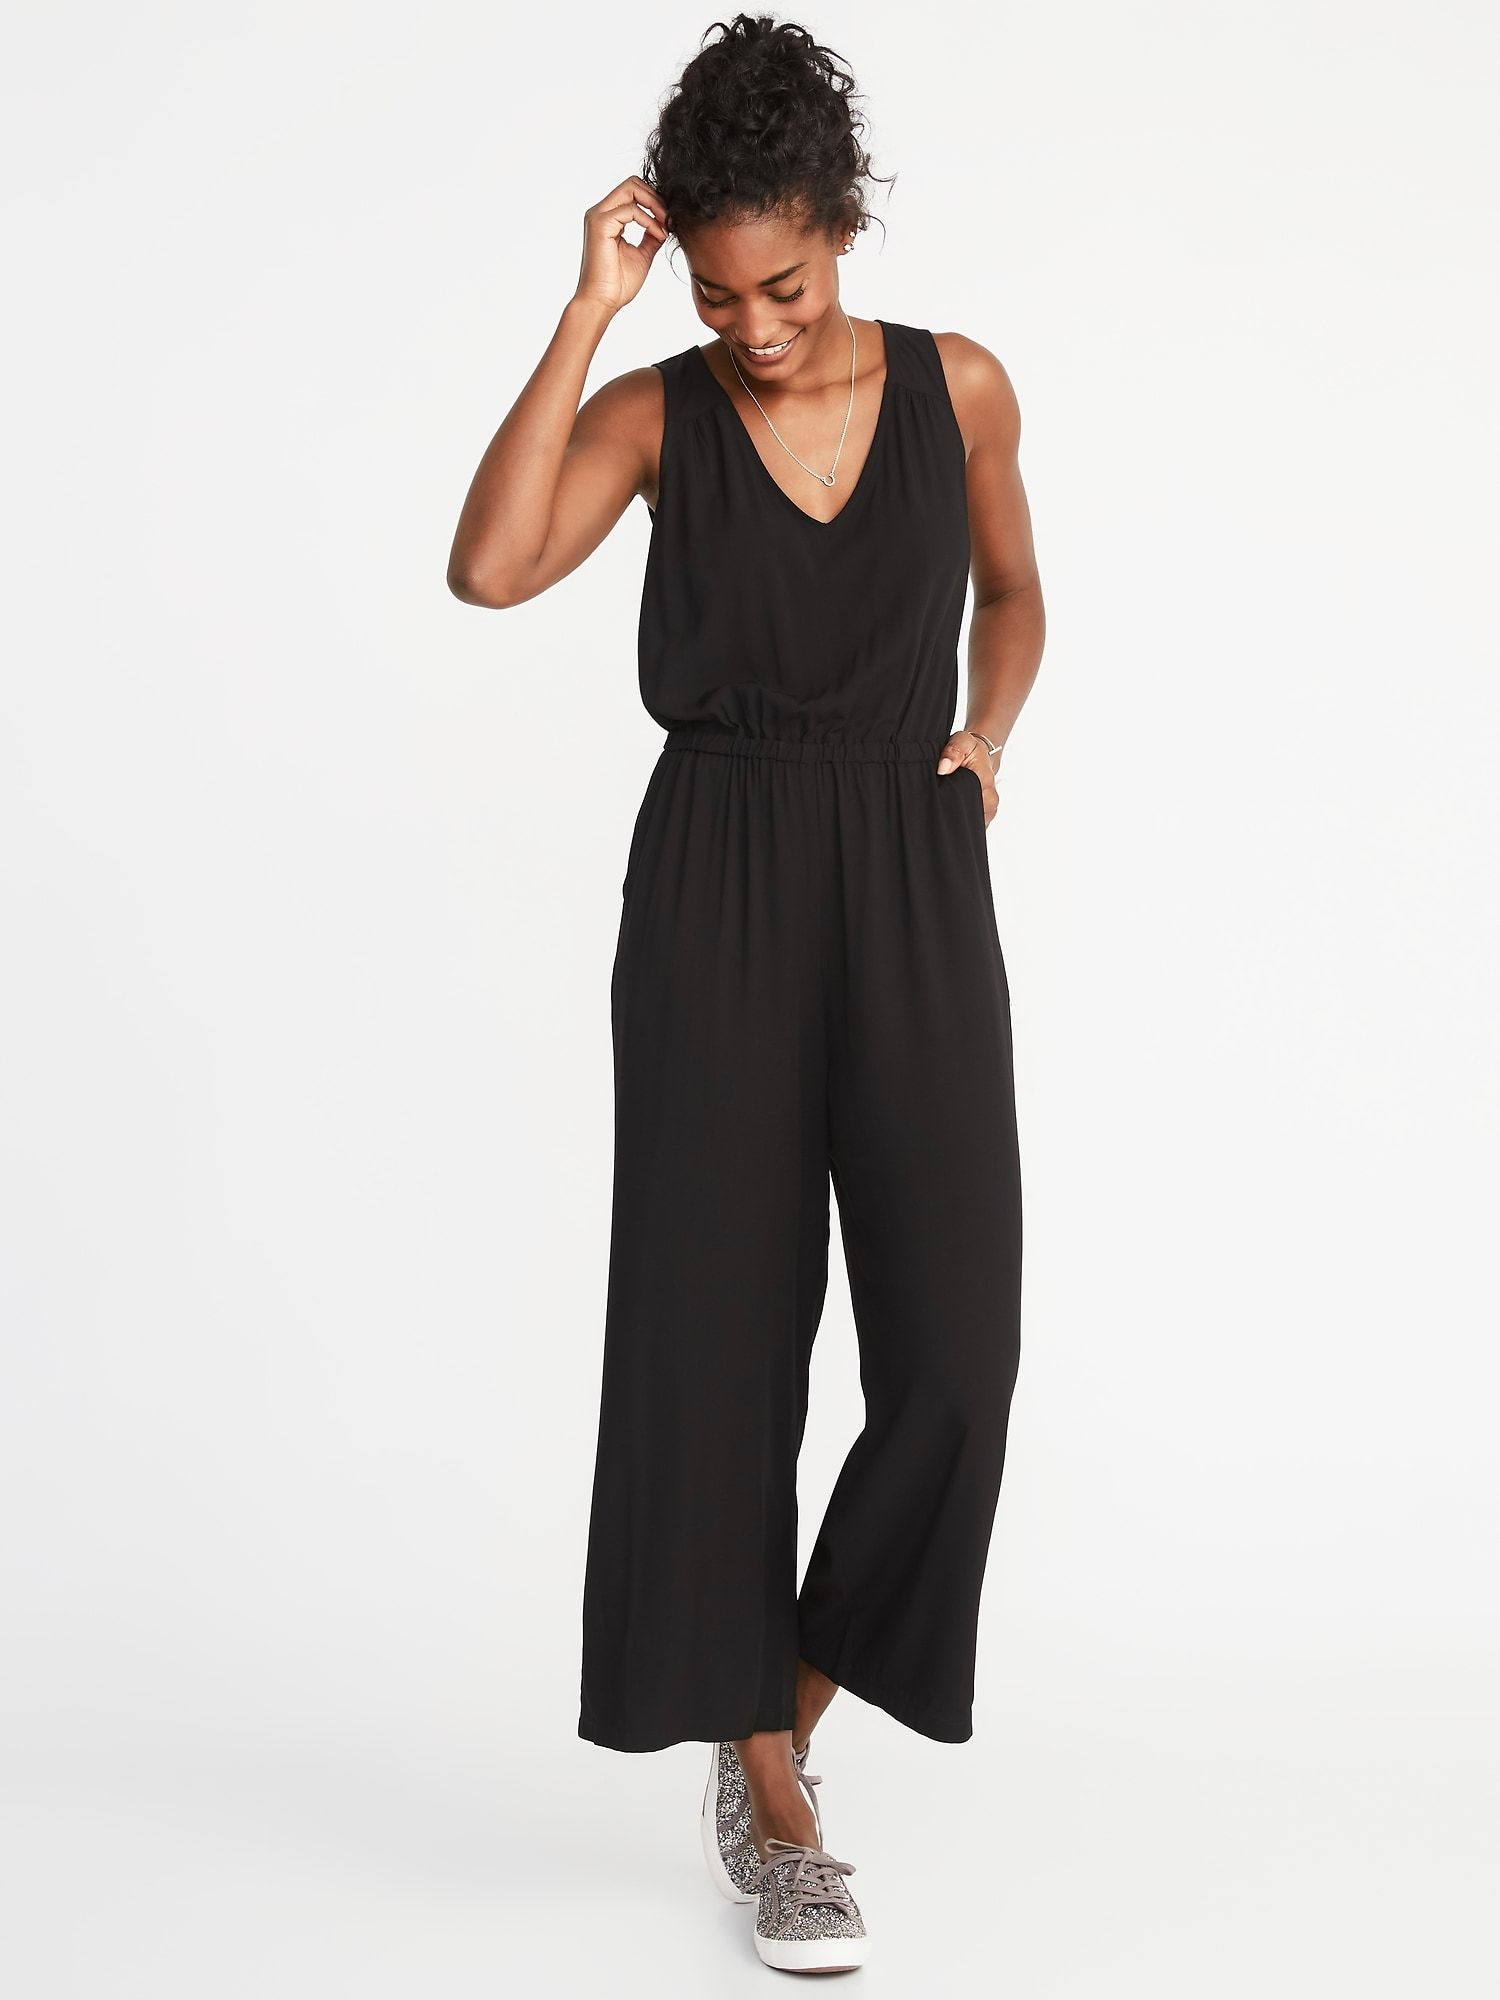 2019 New Womens Summer Loose V-neck Sling Jumpsuit Solid Color Modal Jumpsuit Sleek Minimalist Classic Comfort Choice Materials Women's Clothing